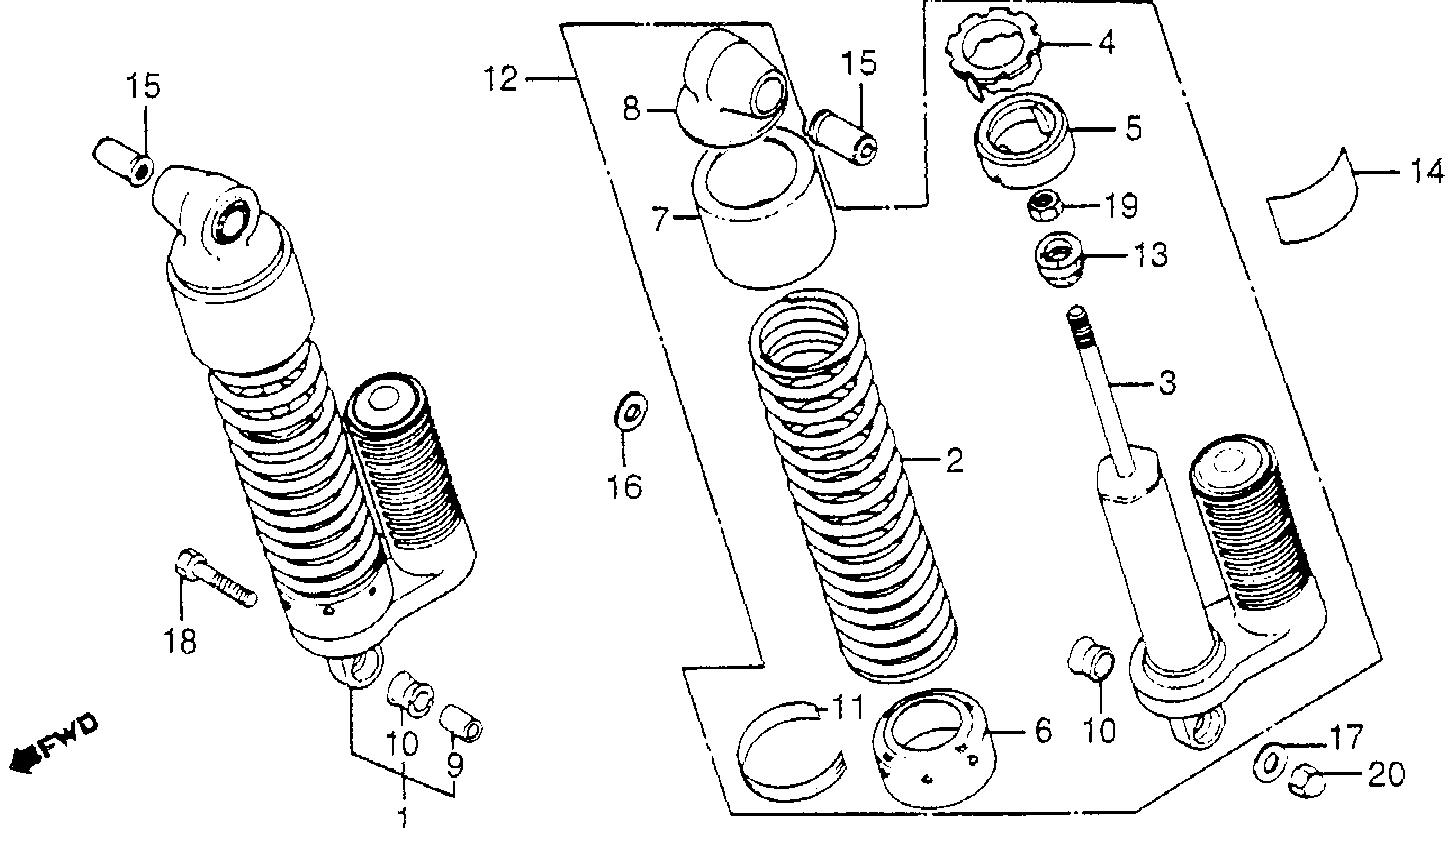 E46 Front Suspension Diagram. Diagrams. Auto Fuse Box Diagram